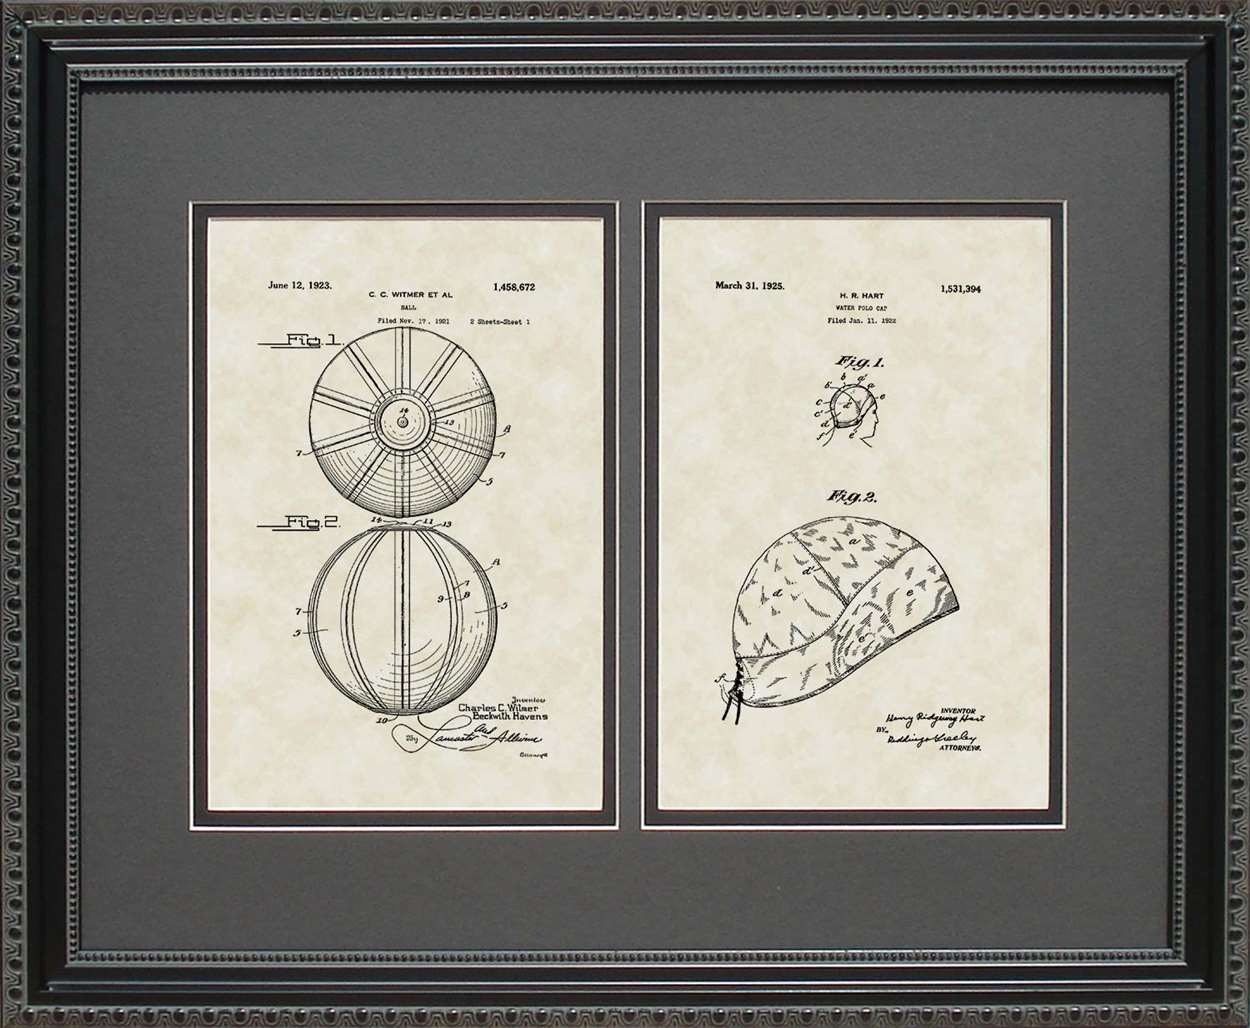 Water Polo Ball & Cap Patents, 16x20